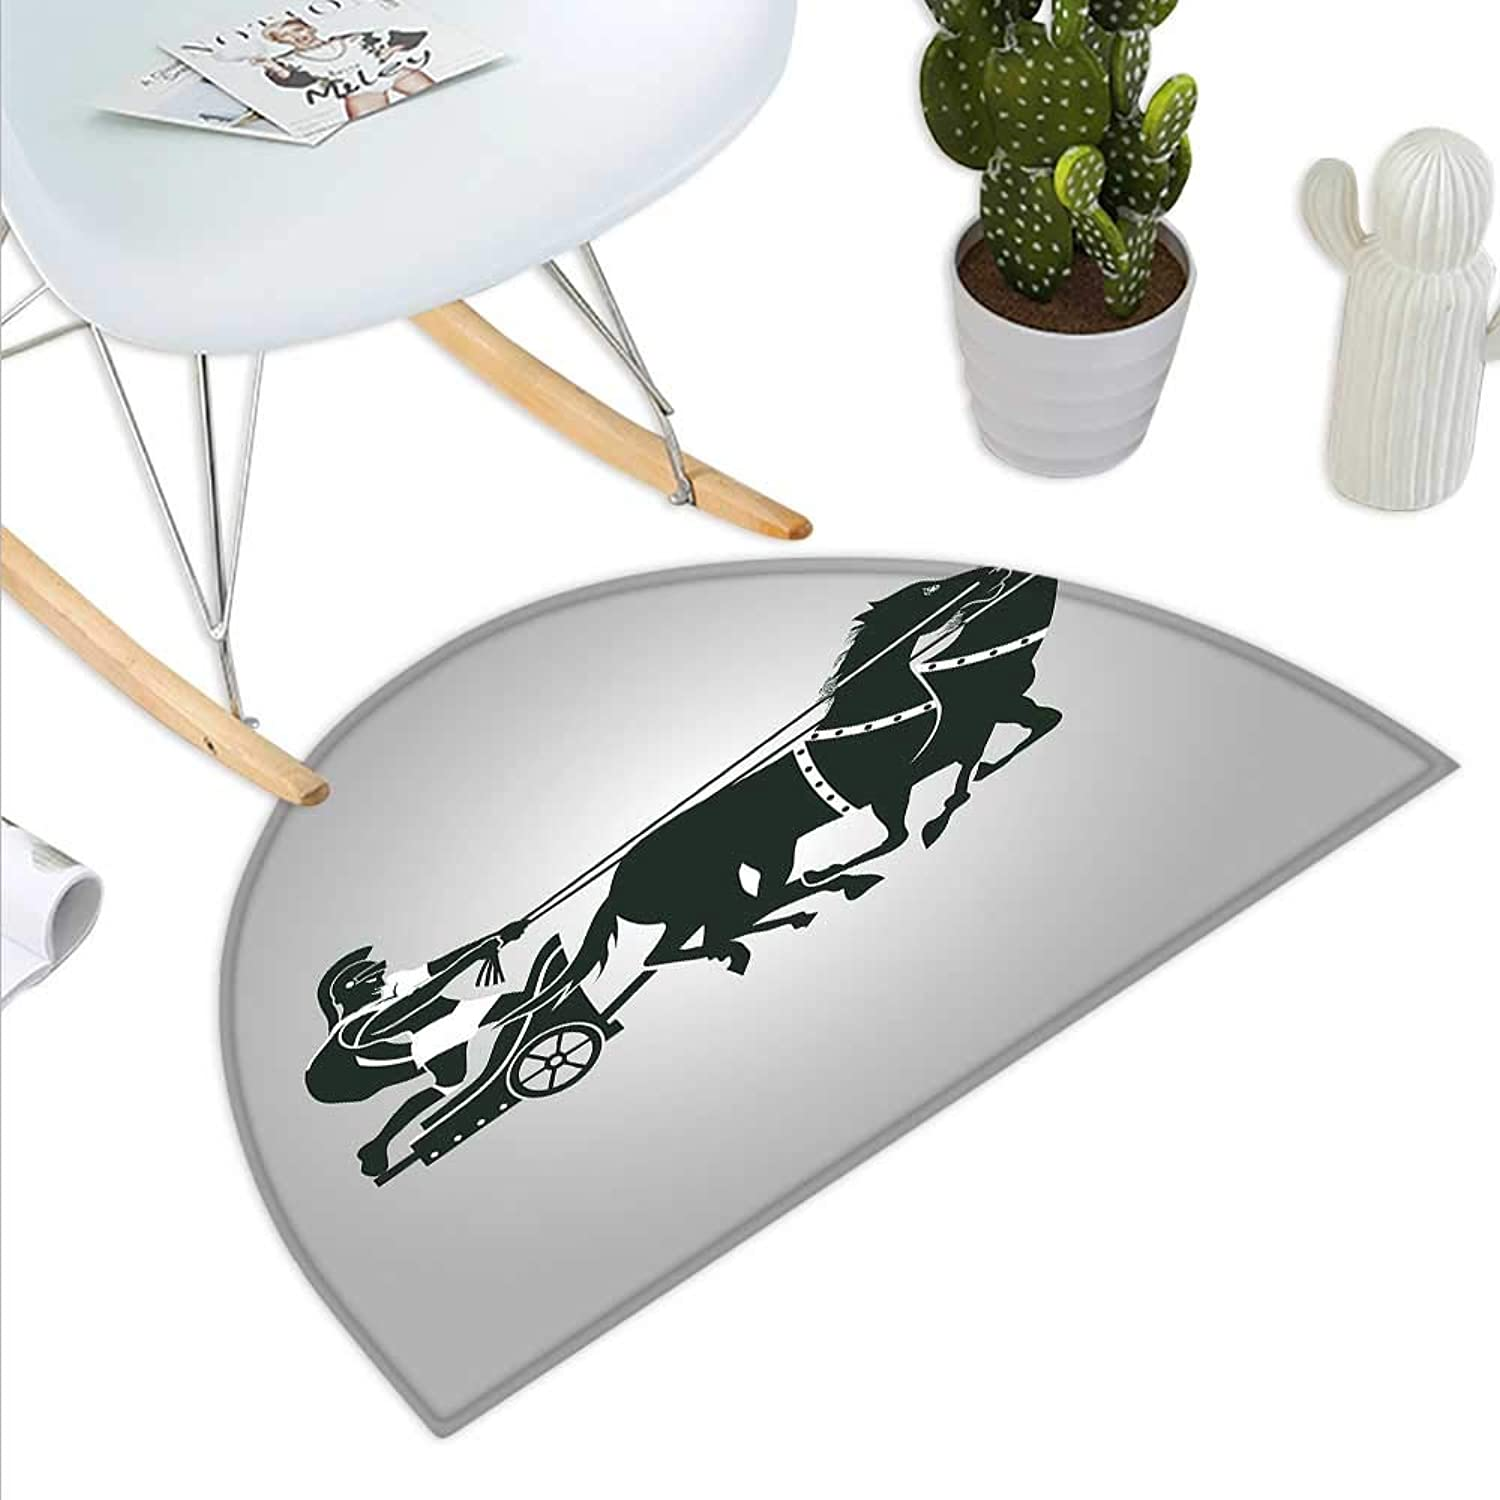 Toga Party Semicircle Doormat Mythological Chariot Gladiator with Horse Traditional Greek Culture Image Halfmoon doormats H 43.3  xD 64.9  Dimgrey Black